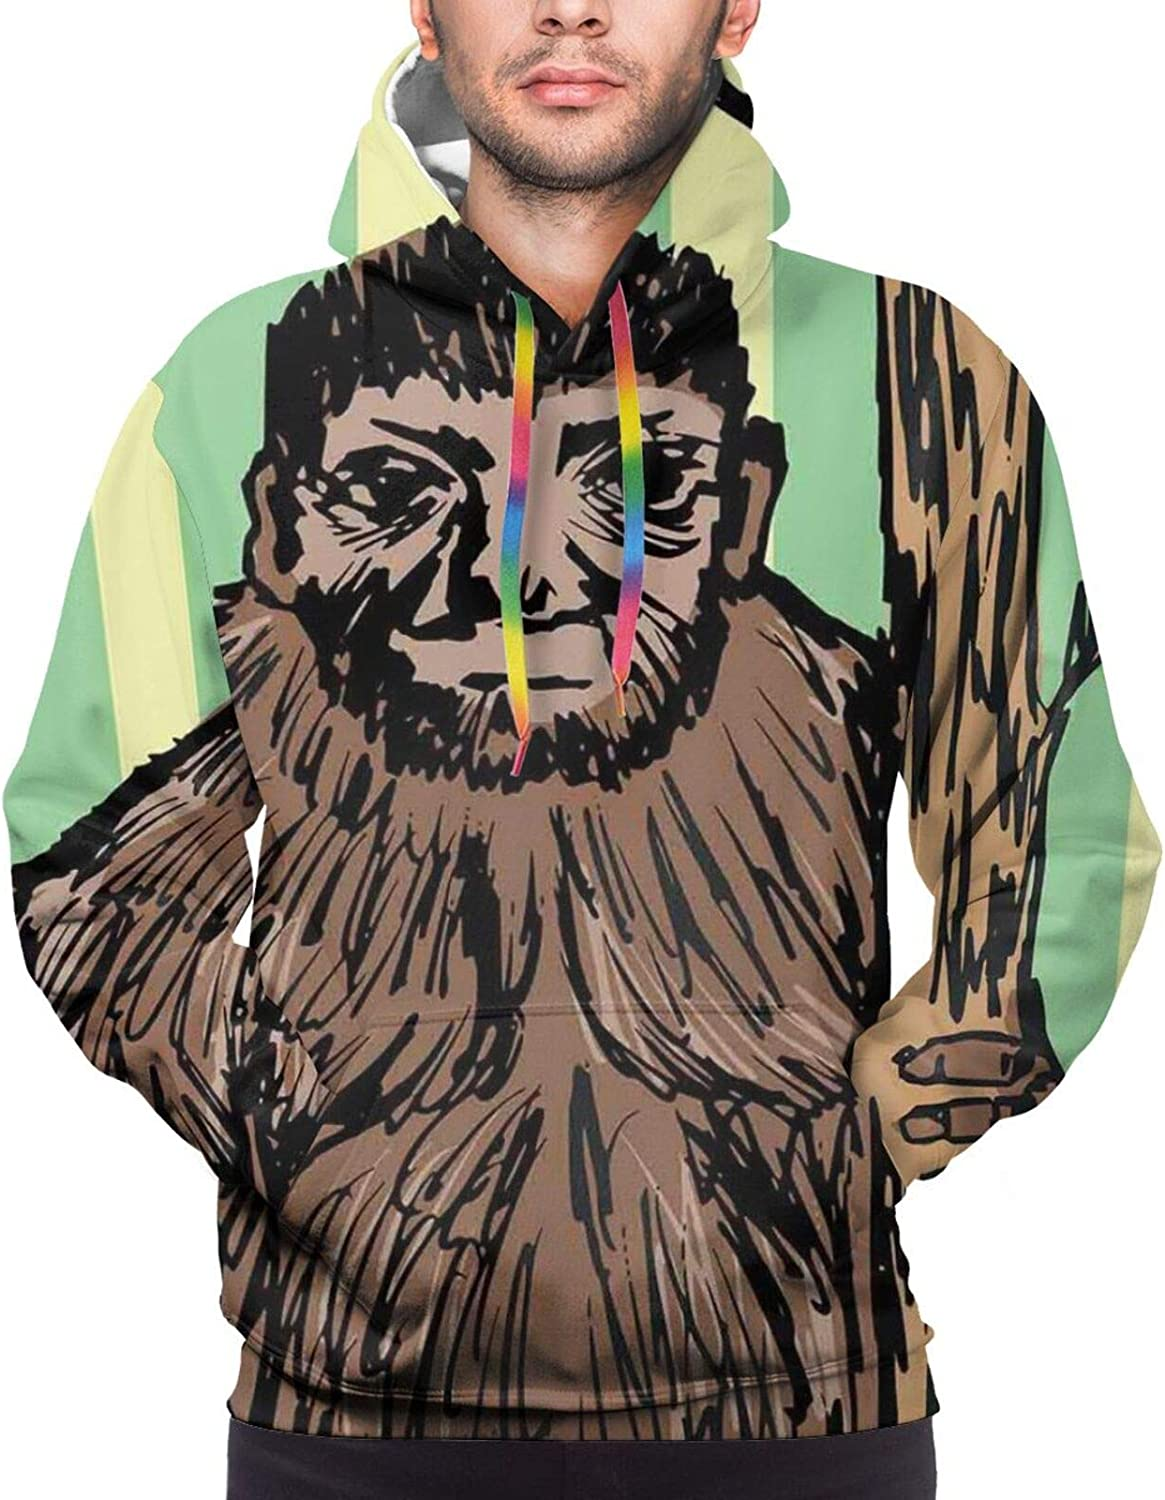 Men's Hoodies Sweatshirts,Artistic Sketch of Mysterious Yeti Holding A Tree Trunk On Striped Background Print